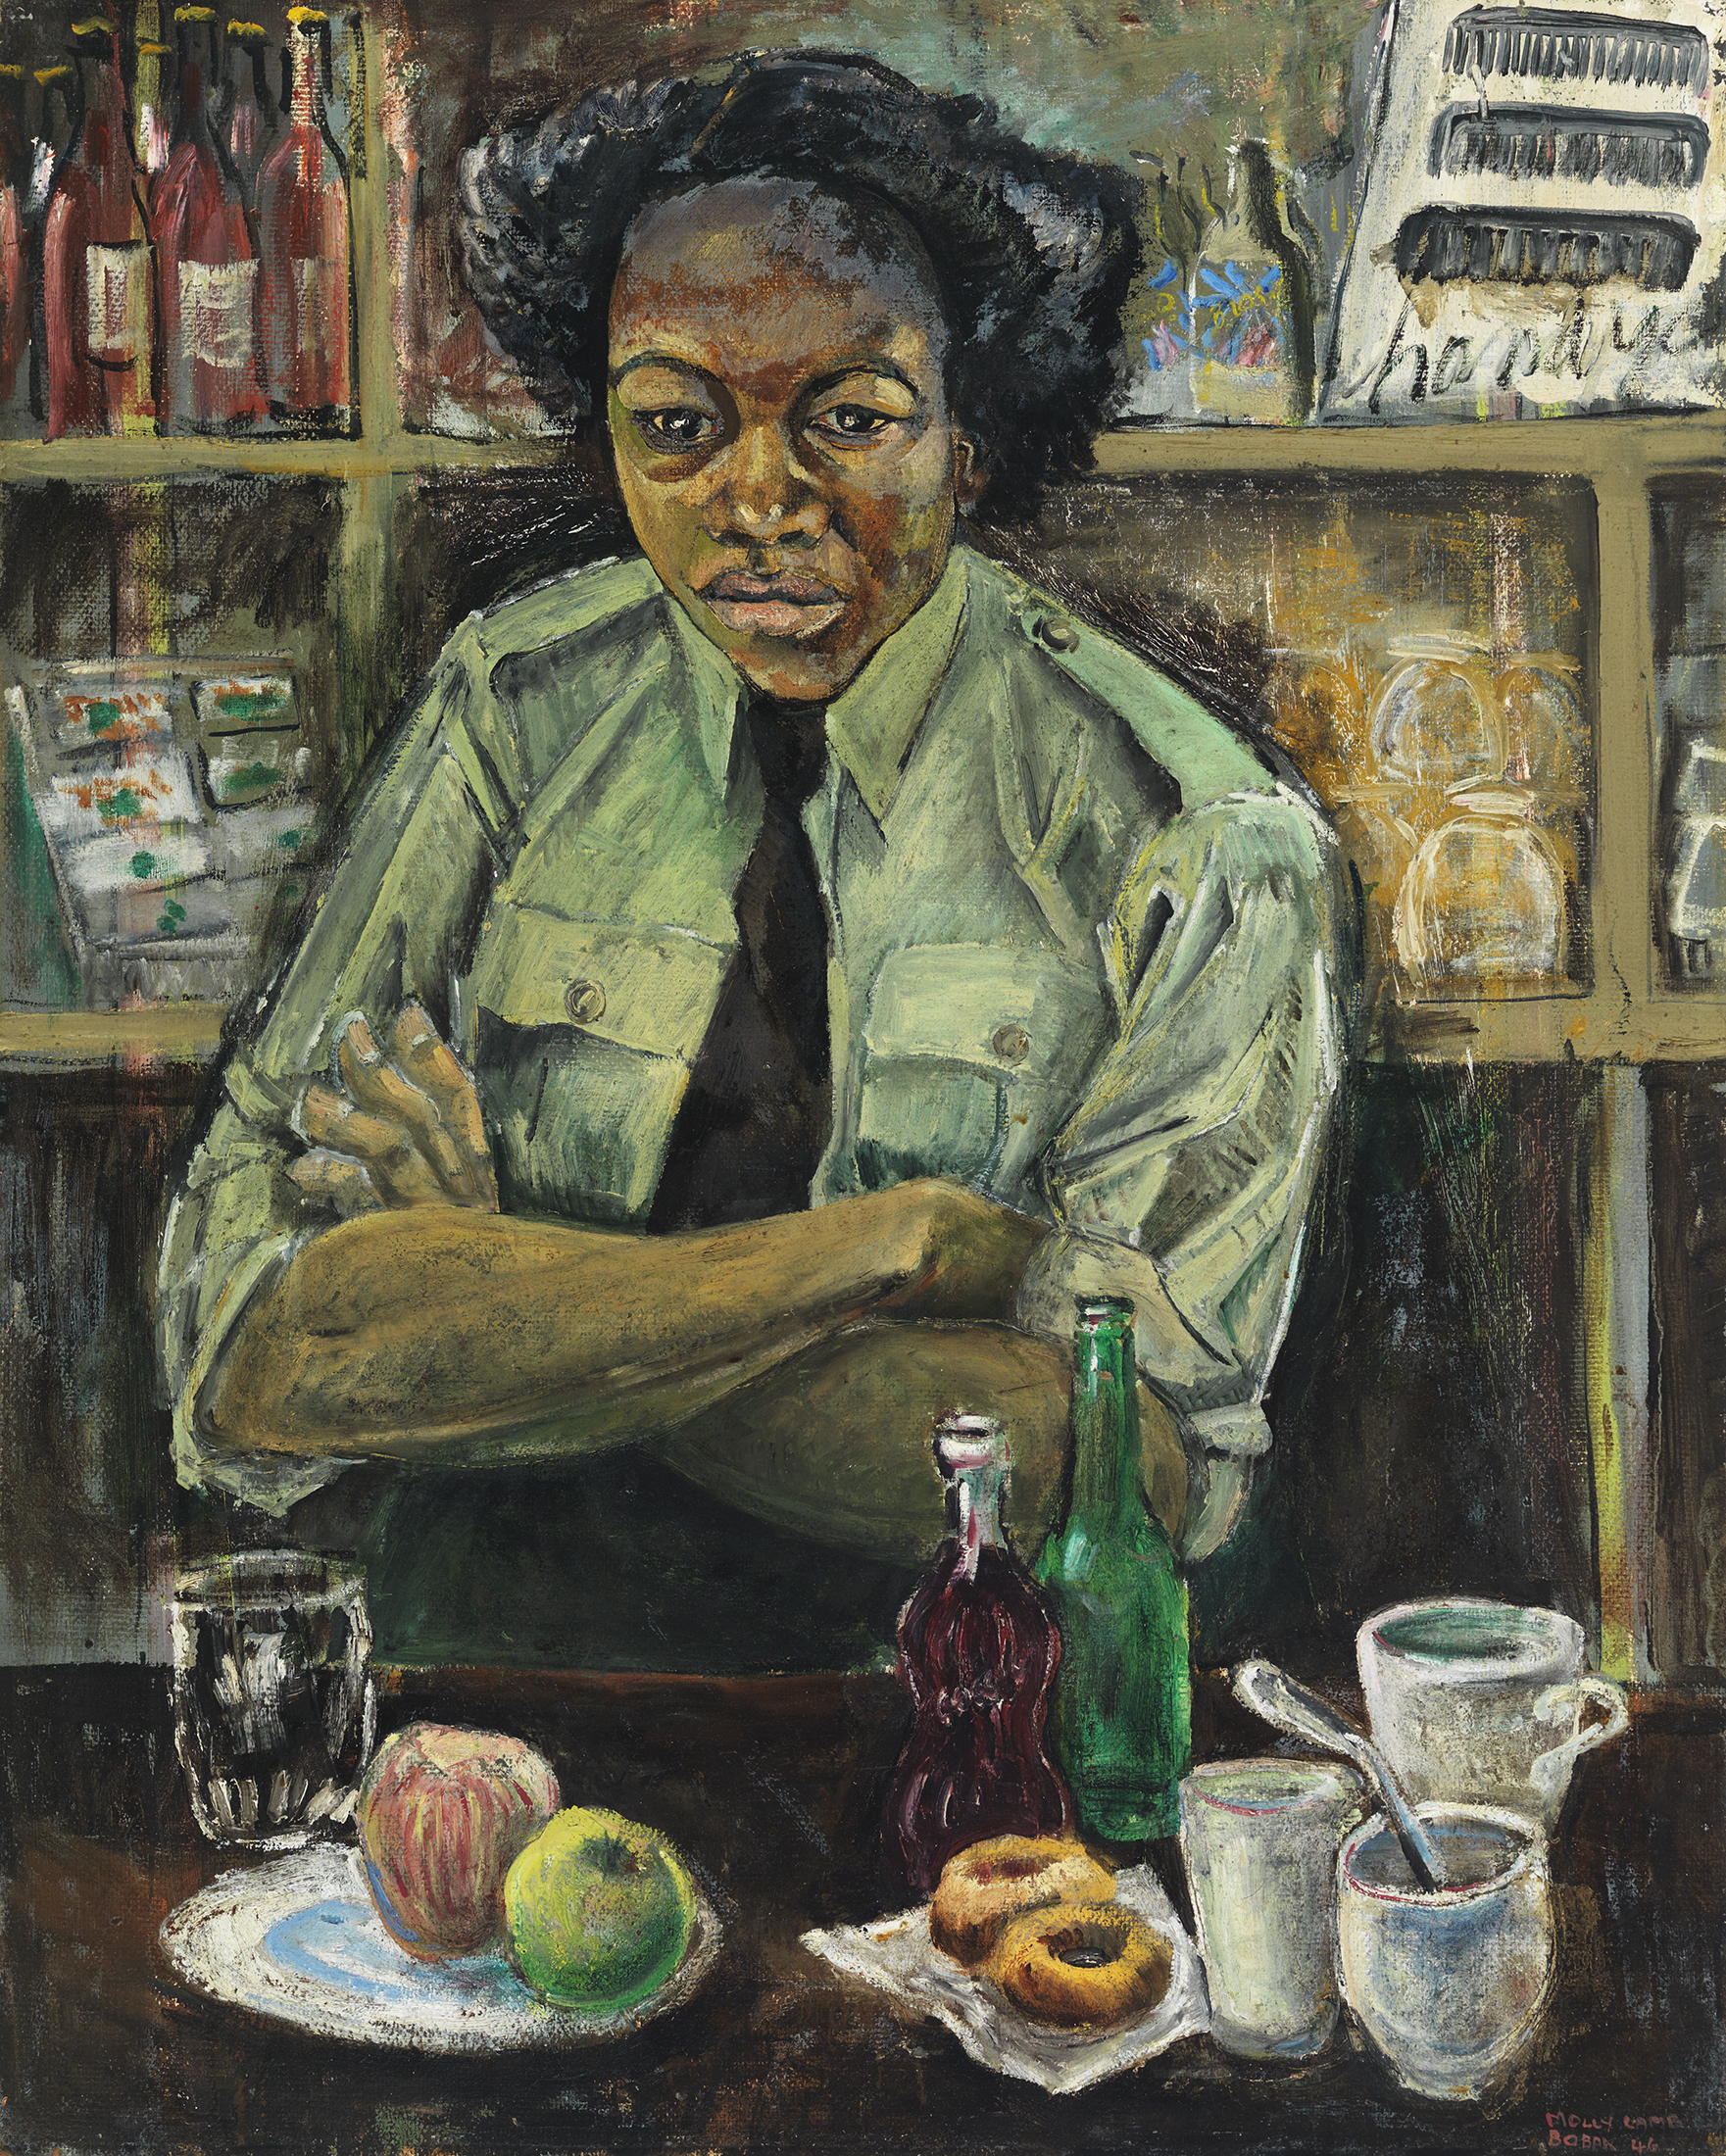 A black woman in a Canadian Army uniform is facing forward, her arms crossed. On the counter in front of her are two pieces of fruit, two doughnuts, bottles, cups and glasses. Behind her are canteen shelves stocked with provisions.